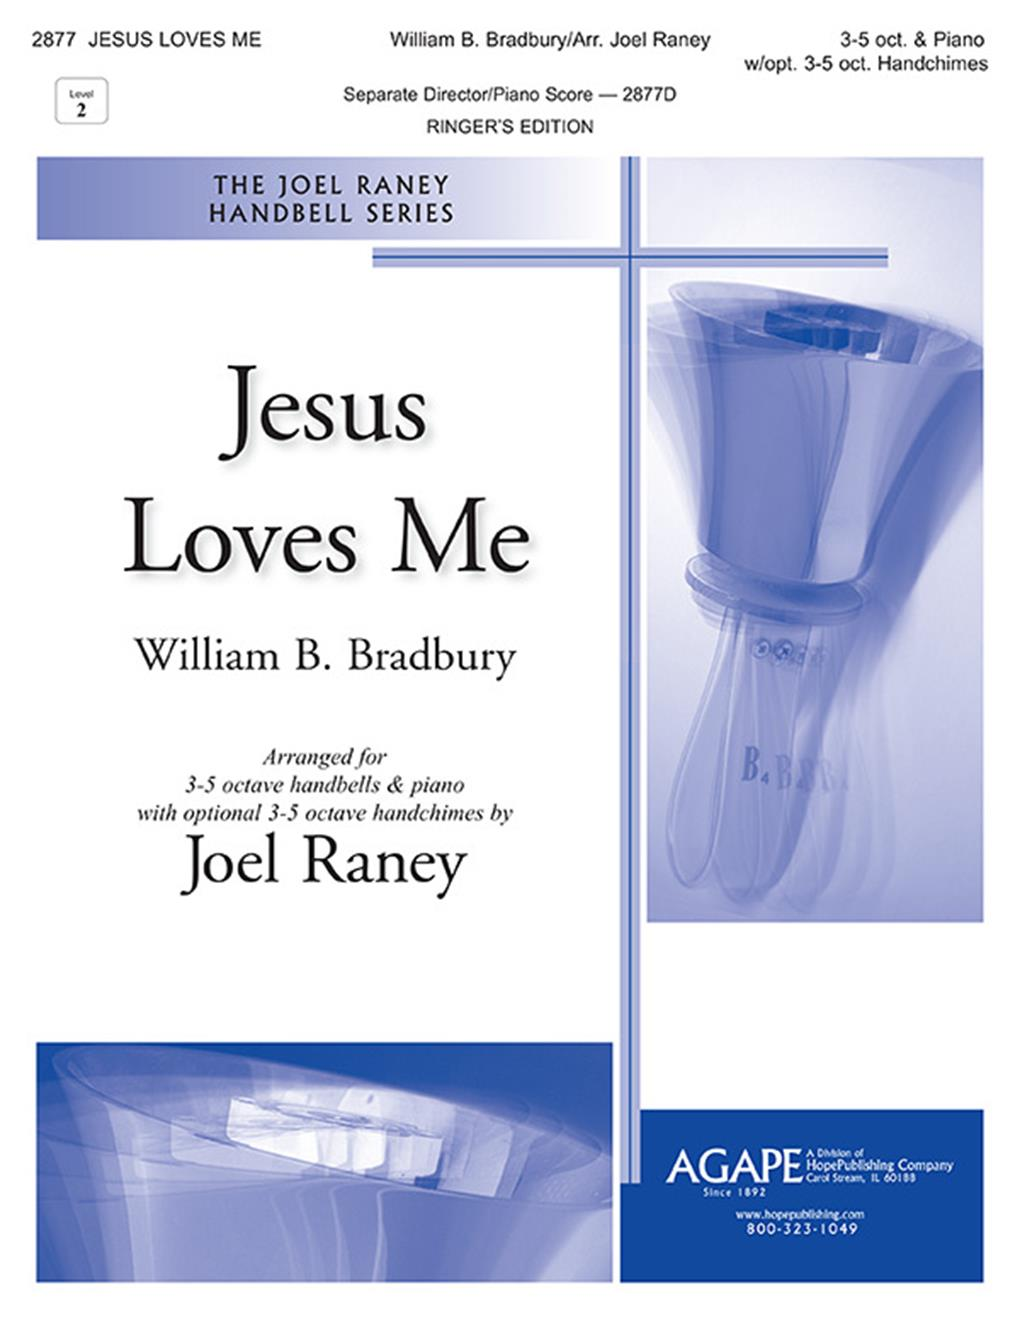 Jesus Loves Me - 3-5 oct. Cover Image